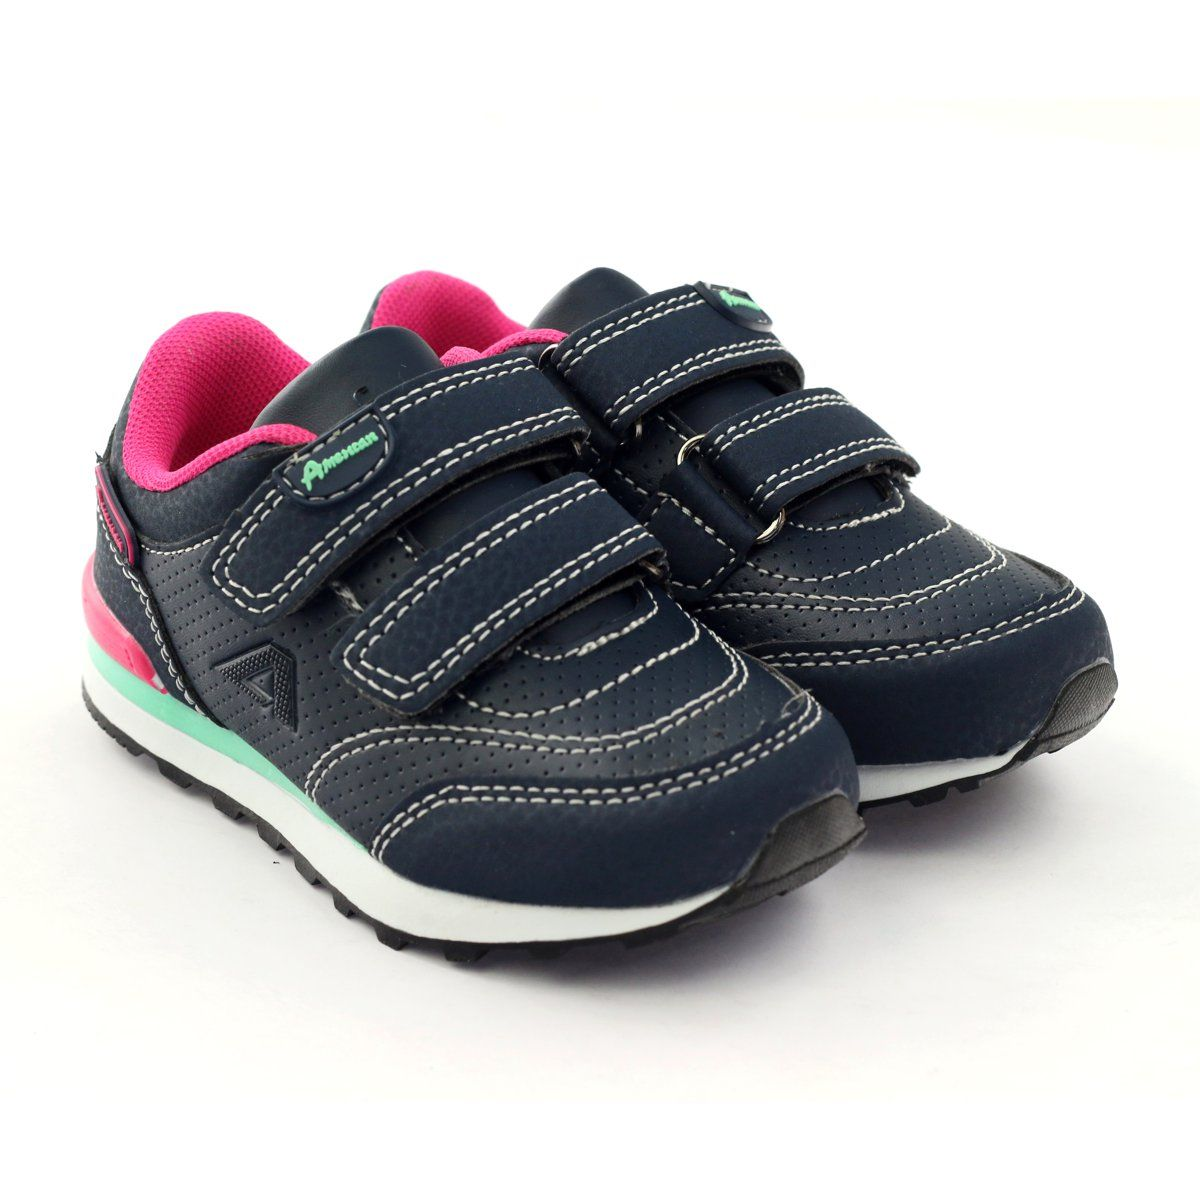 American Club Adi Sports Sneakers Navy American D1 Pink Multicolored White Navy Blue Sneakers Blue Sneakers Sport Sneakers